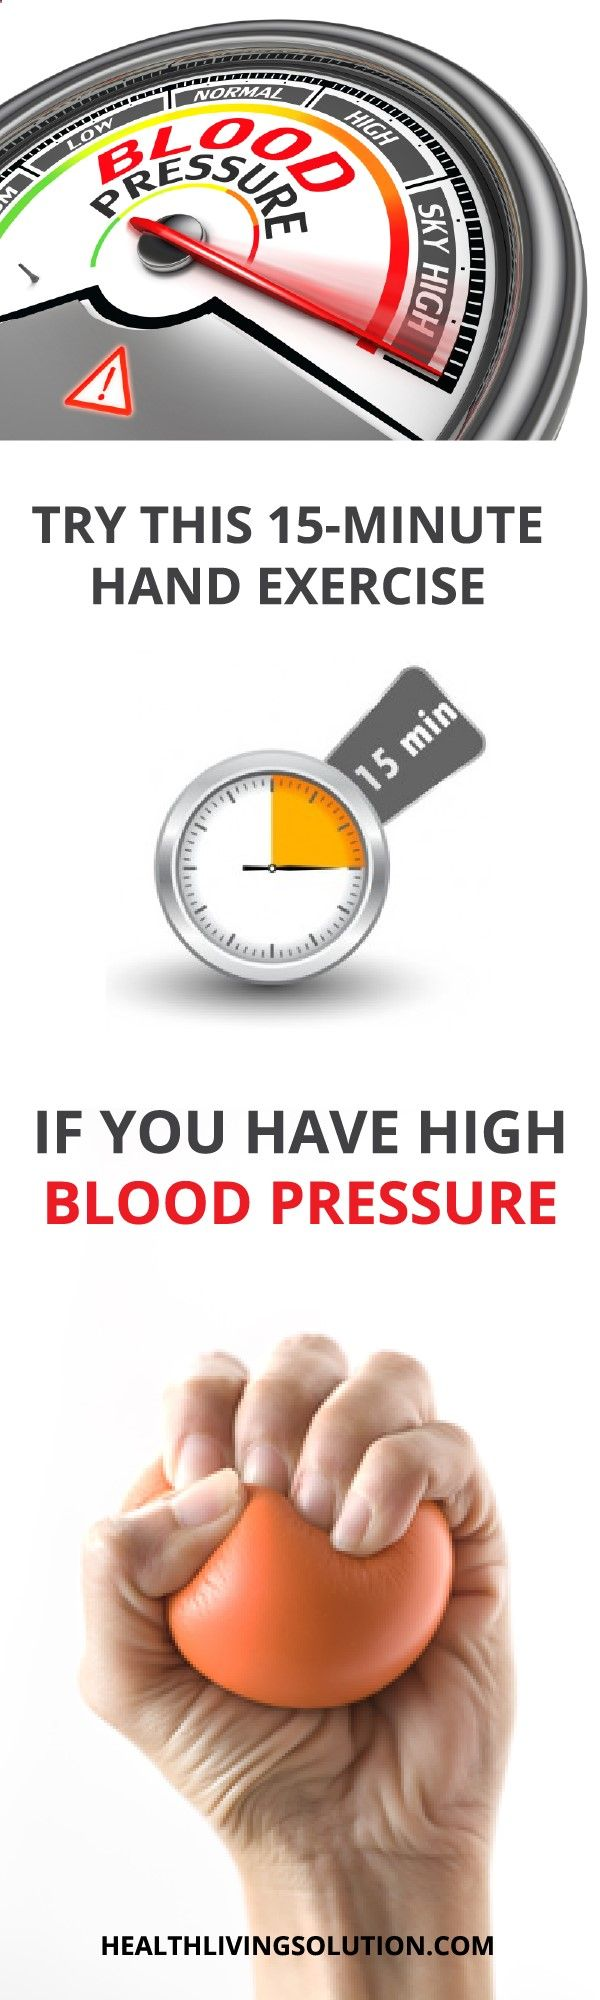 Did you understand that 1 in 3 grownups in America has hypertension? About 80% of those individuals understand they have it. From that 80%, just 52% of those individuals have in under control? For the very first 60 years, males have greater high blood pressure. However, after that, ladies' high blood pressure begins to increase. …